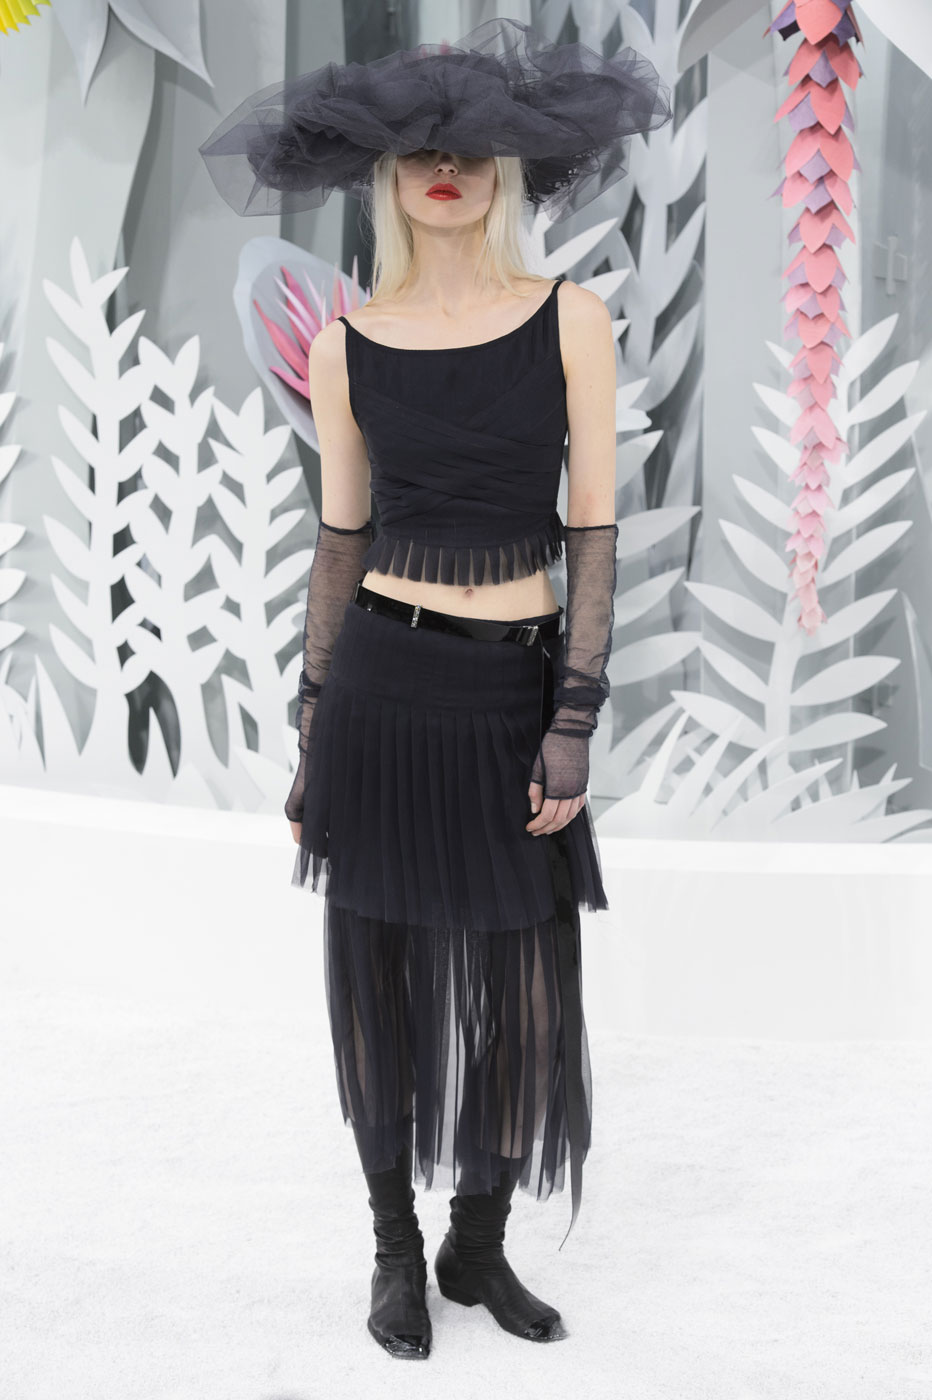 Chanel-fashion-runway-show-haute-couture-paris-spring-summer-2015-the-impression-096